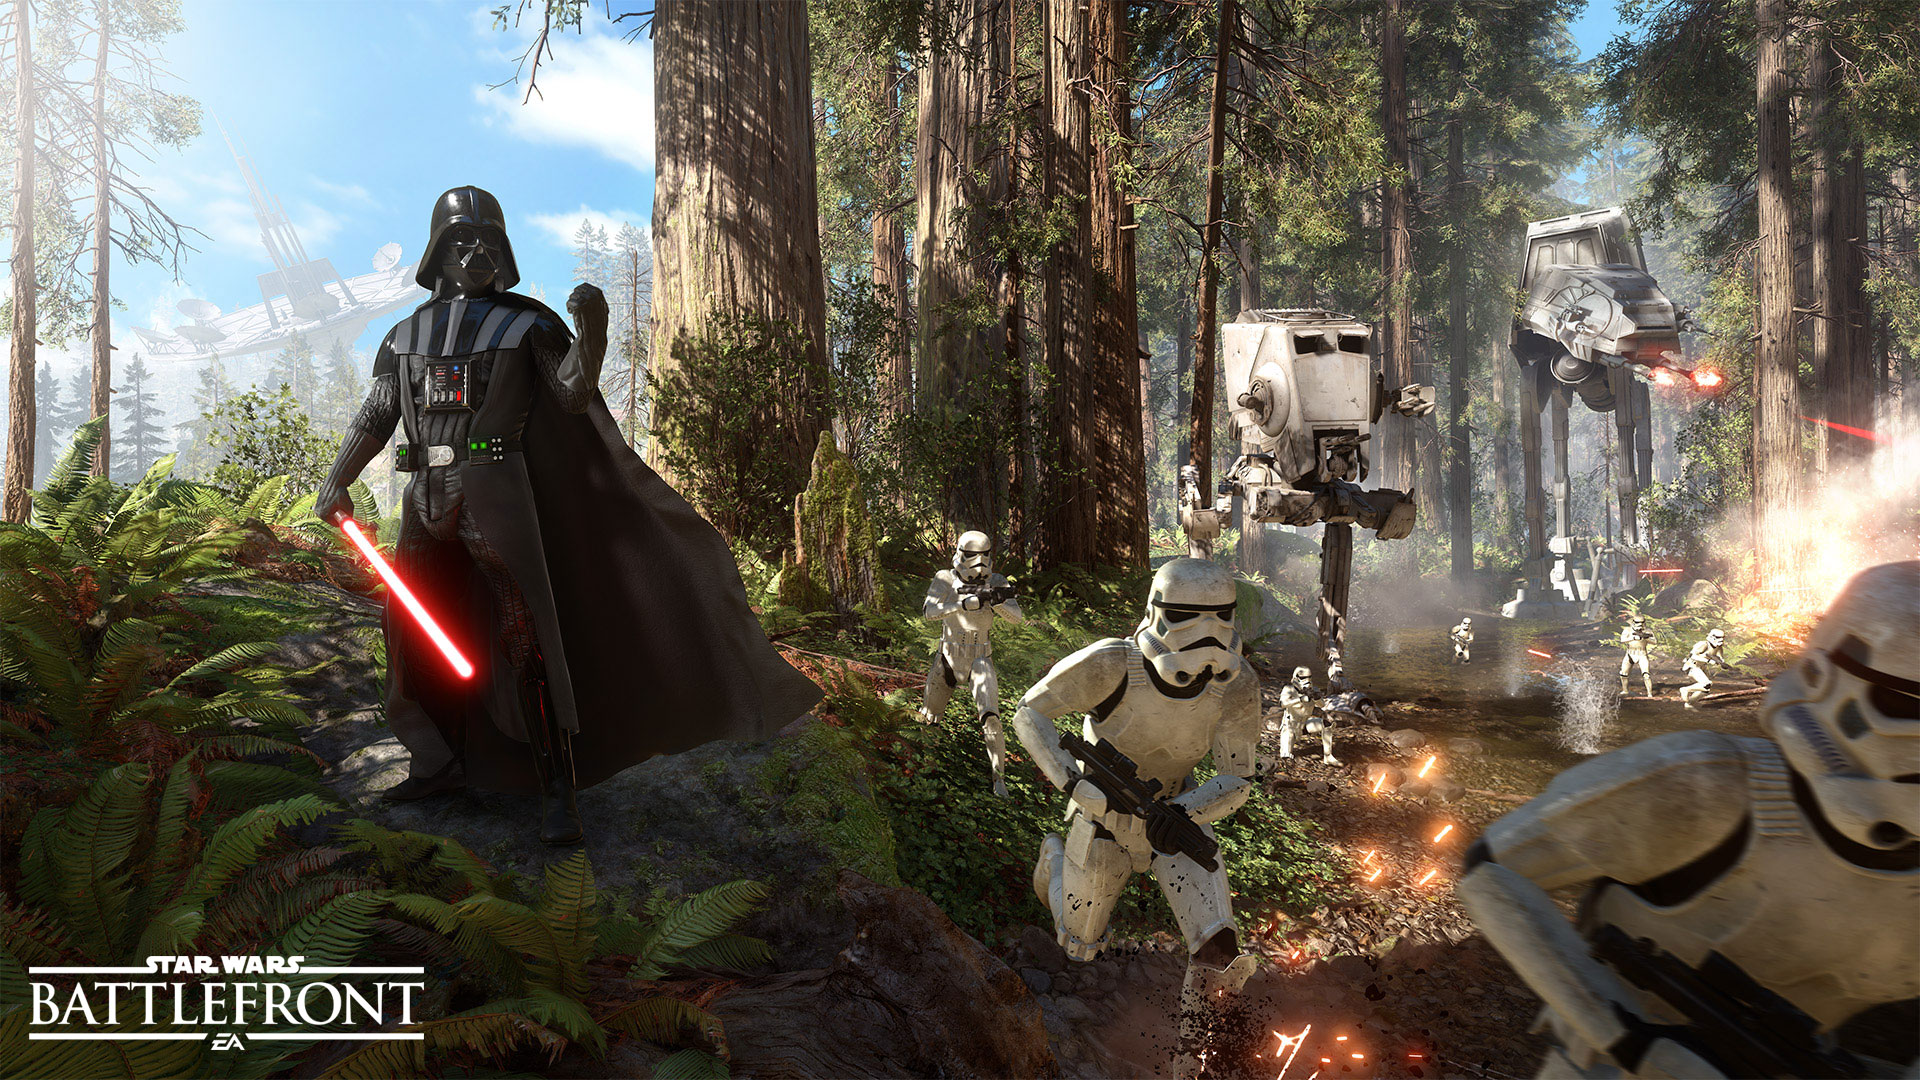 Star Wars Battlefront HD Wallpapers and Backgrounds